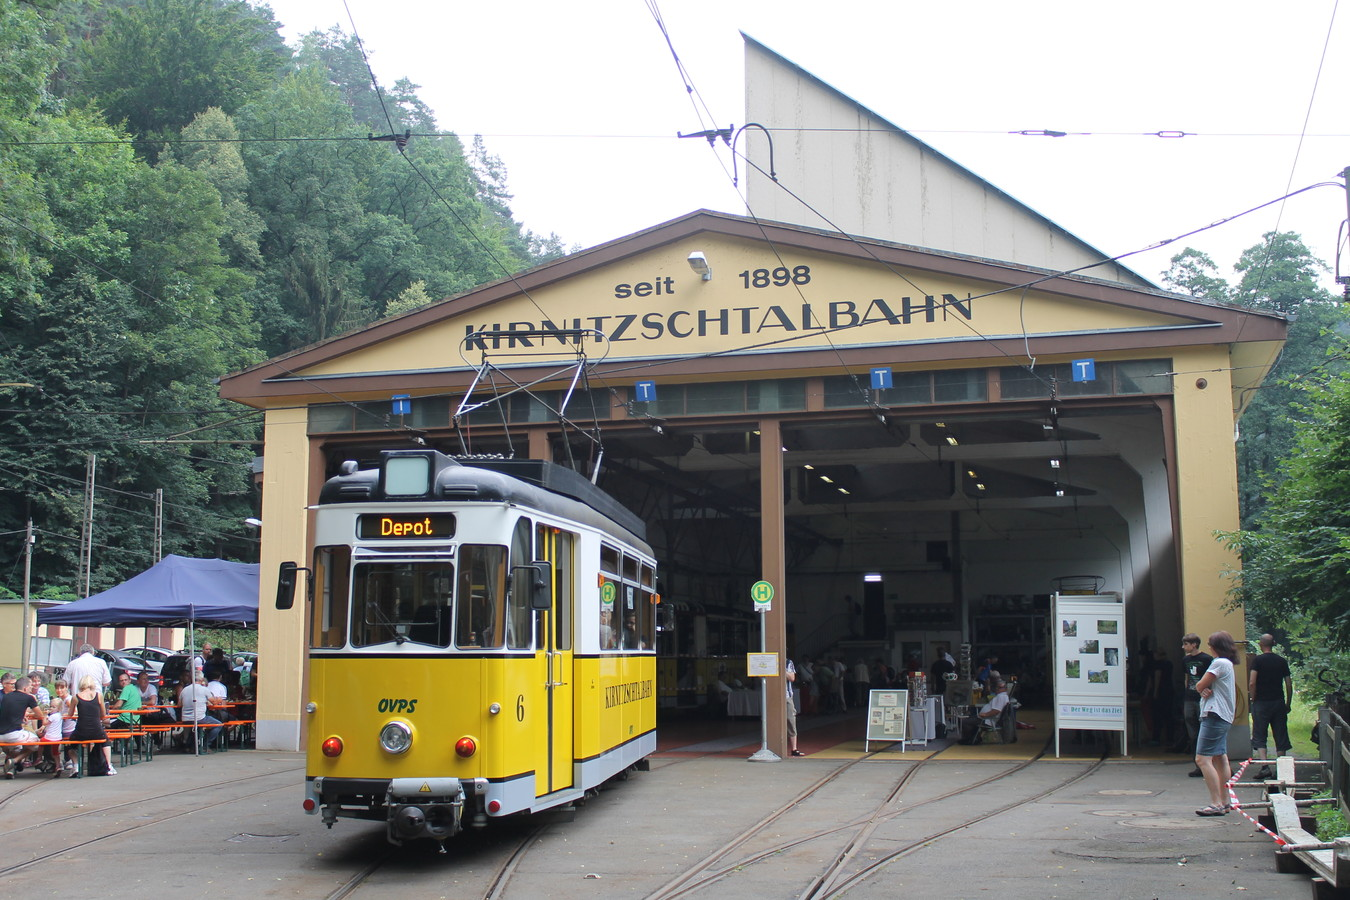 Kirnitzschtalbahn stra enbahn for Depot bad